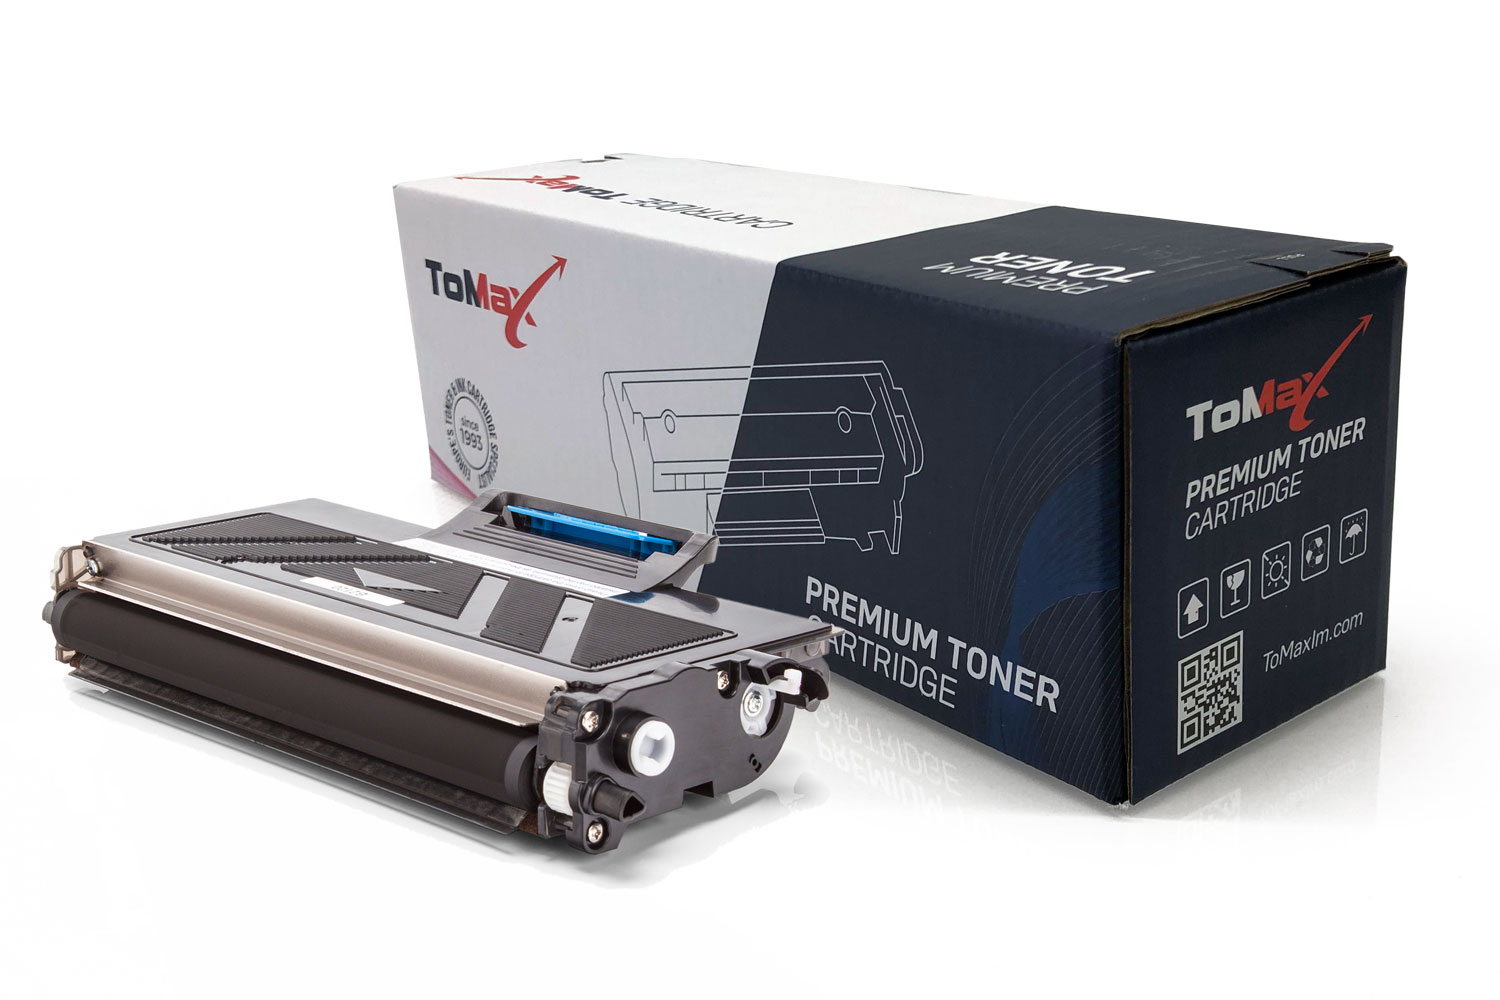 ToMax Premium Toner Cartridge replaces Canon 6272B002 / 731BK Black